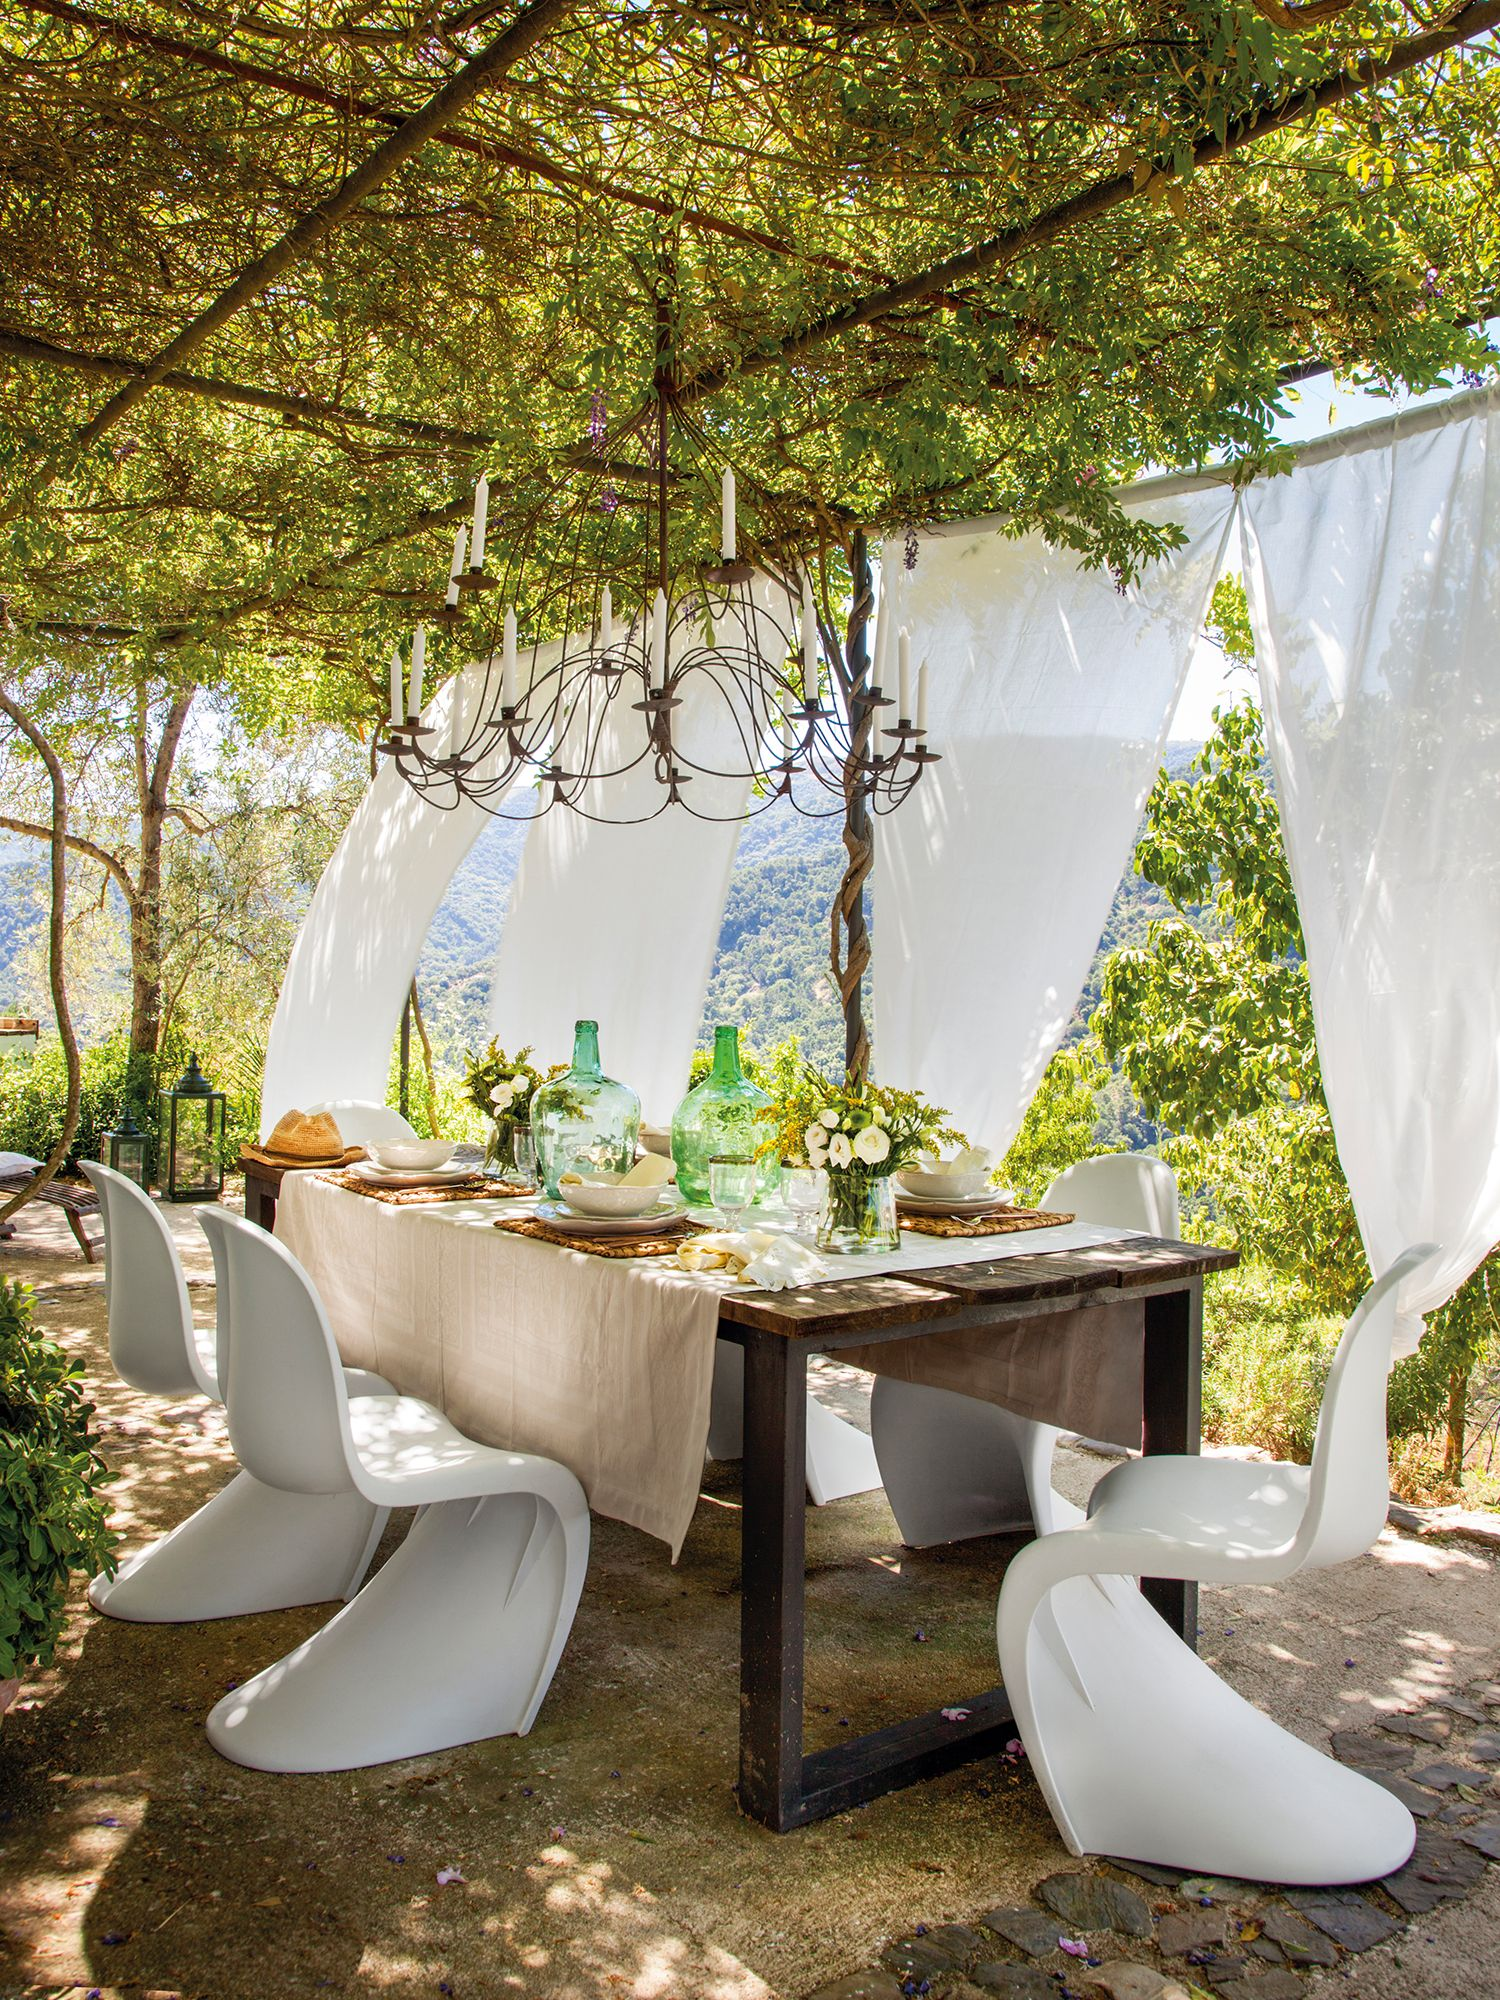 Silla Panton Blanca De Contrastes Living Nice Panton Chair Pergola Ideas For